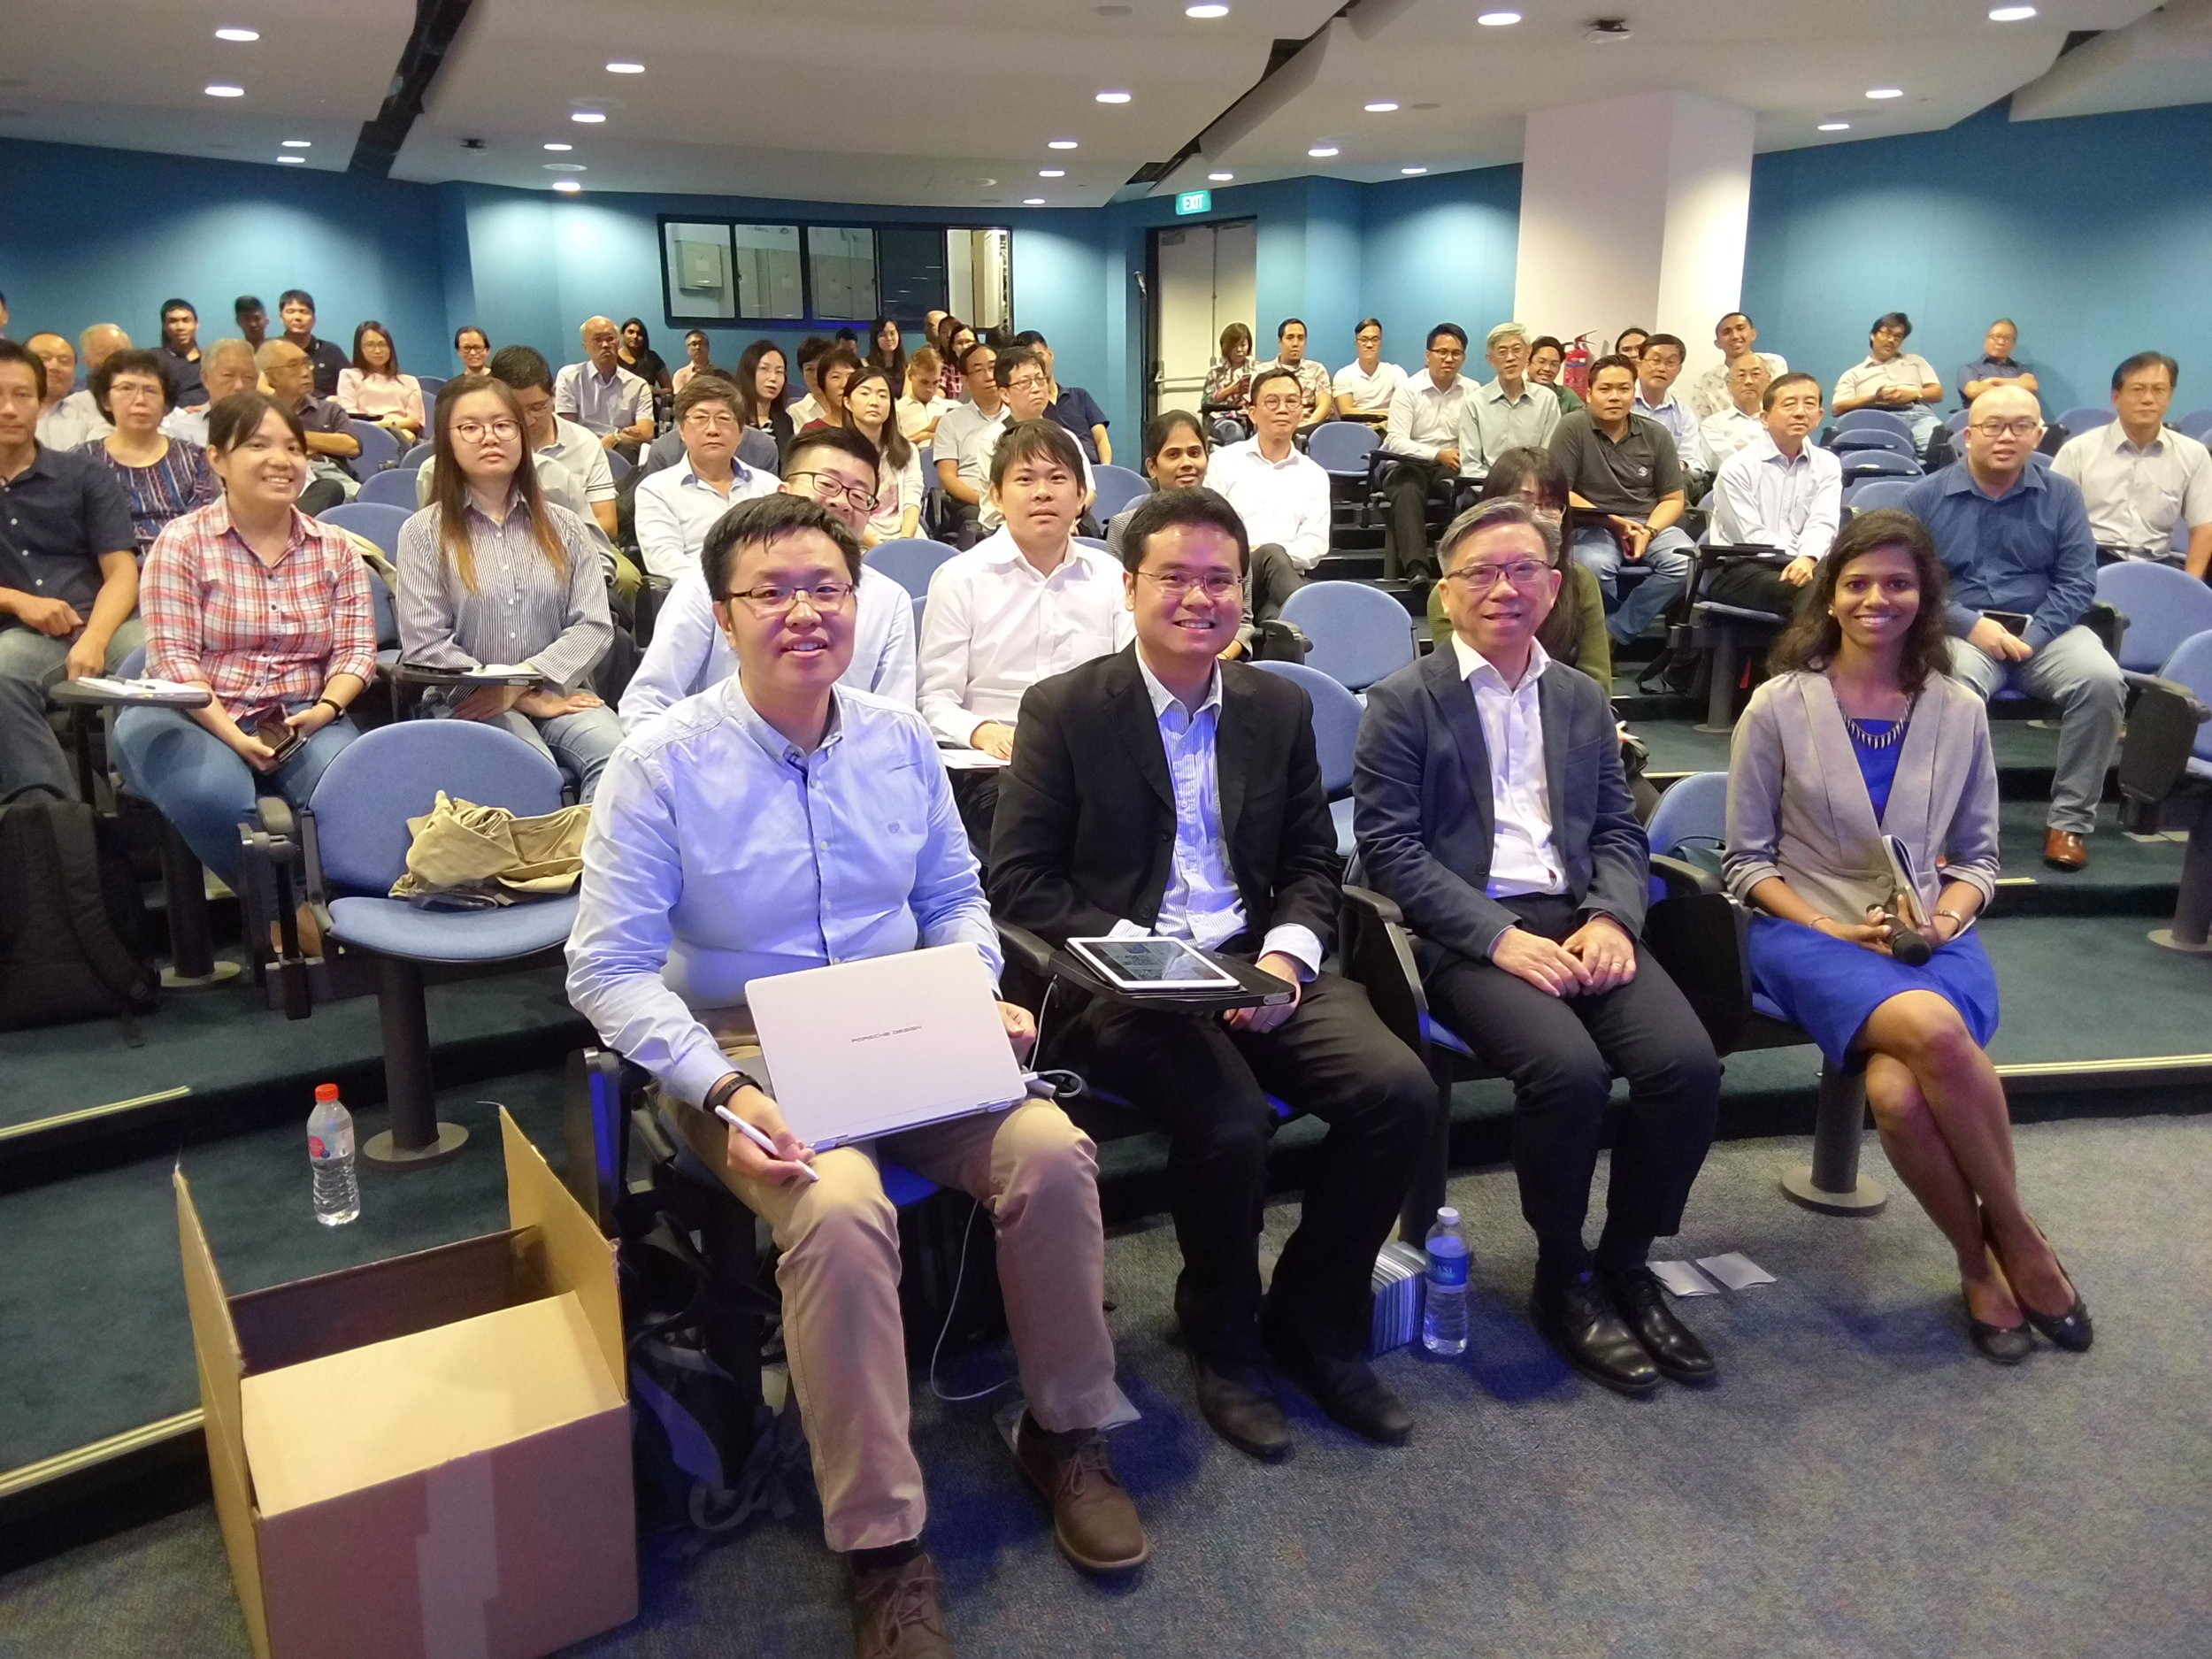 Participants at SHEF 2019 together with Keynote speaker, Professor James Goh, Head of Department, Department of Biomedical Engineering, National University of Singapore.